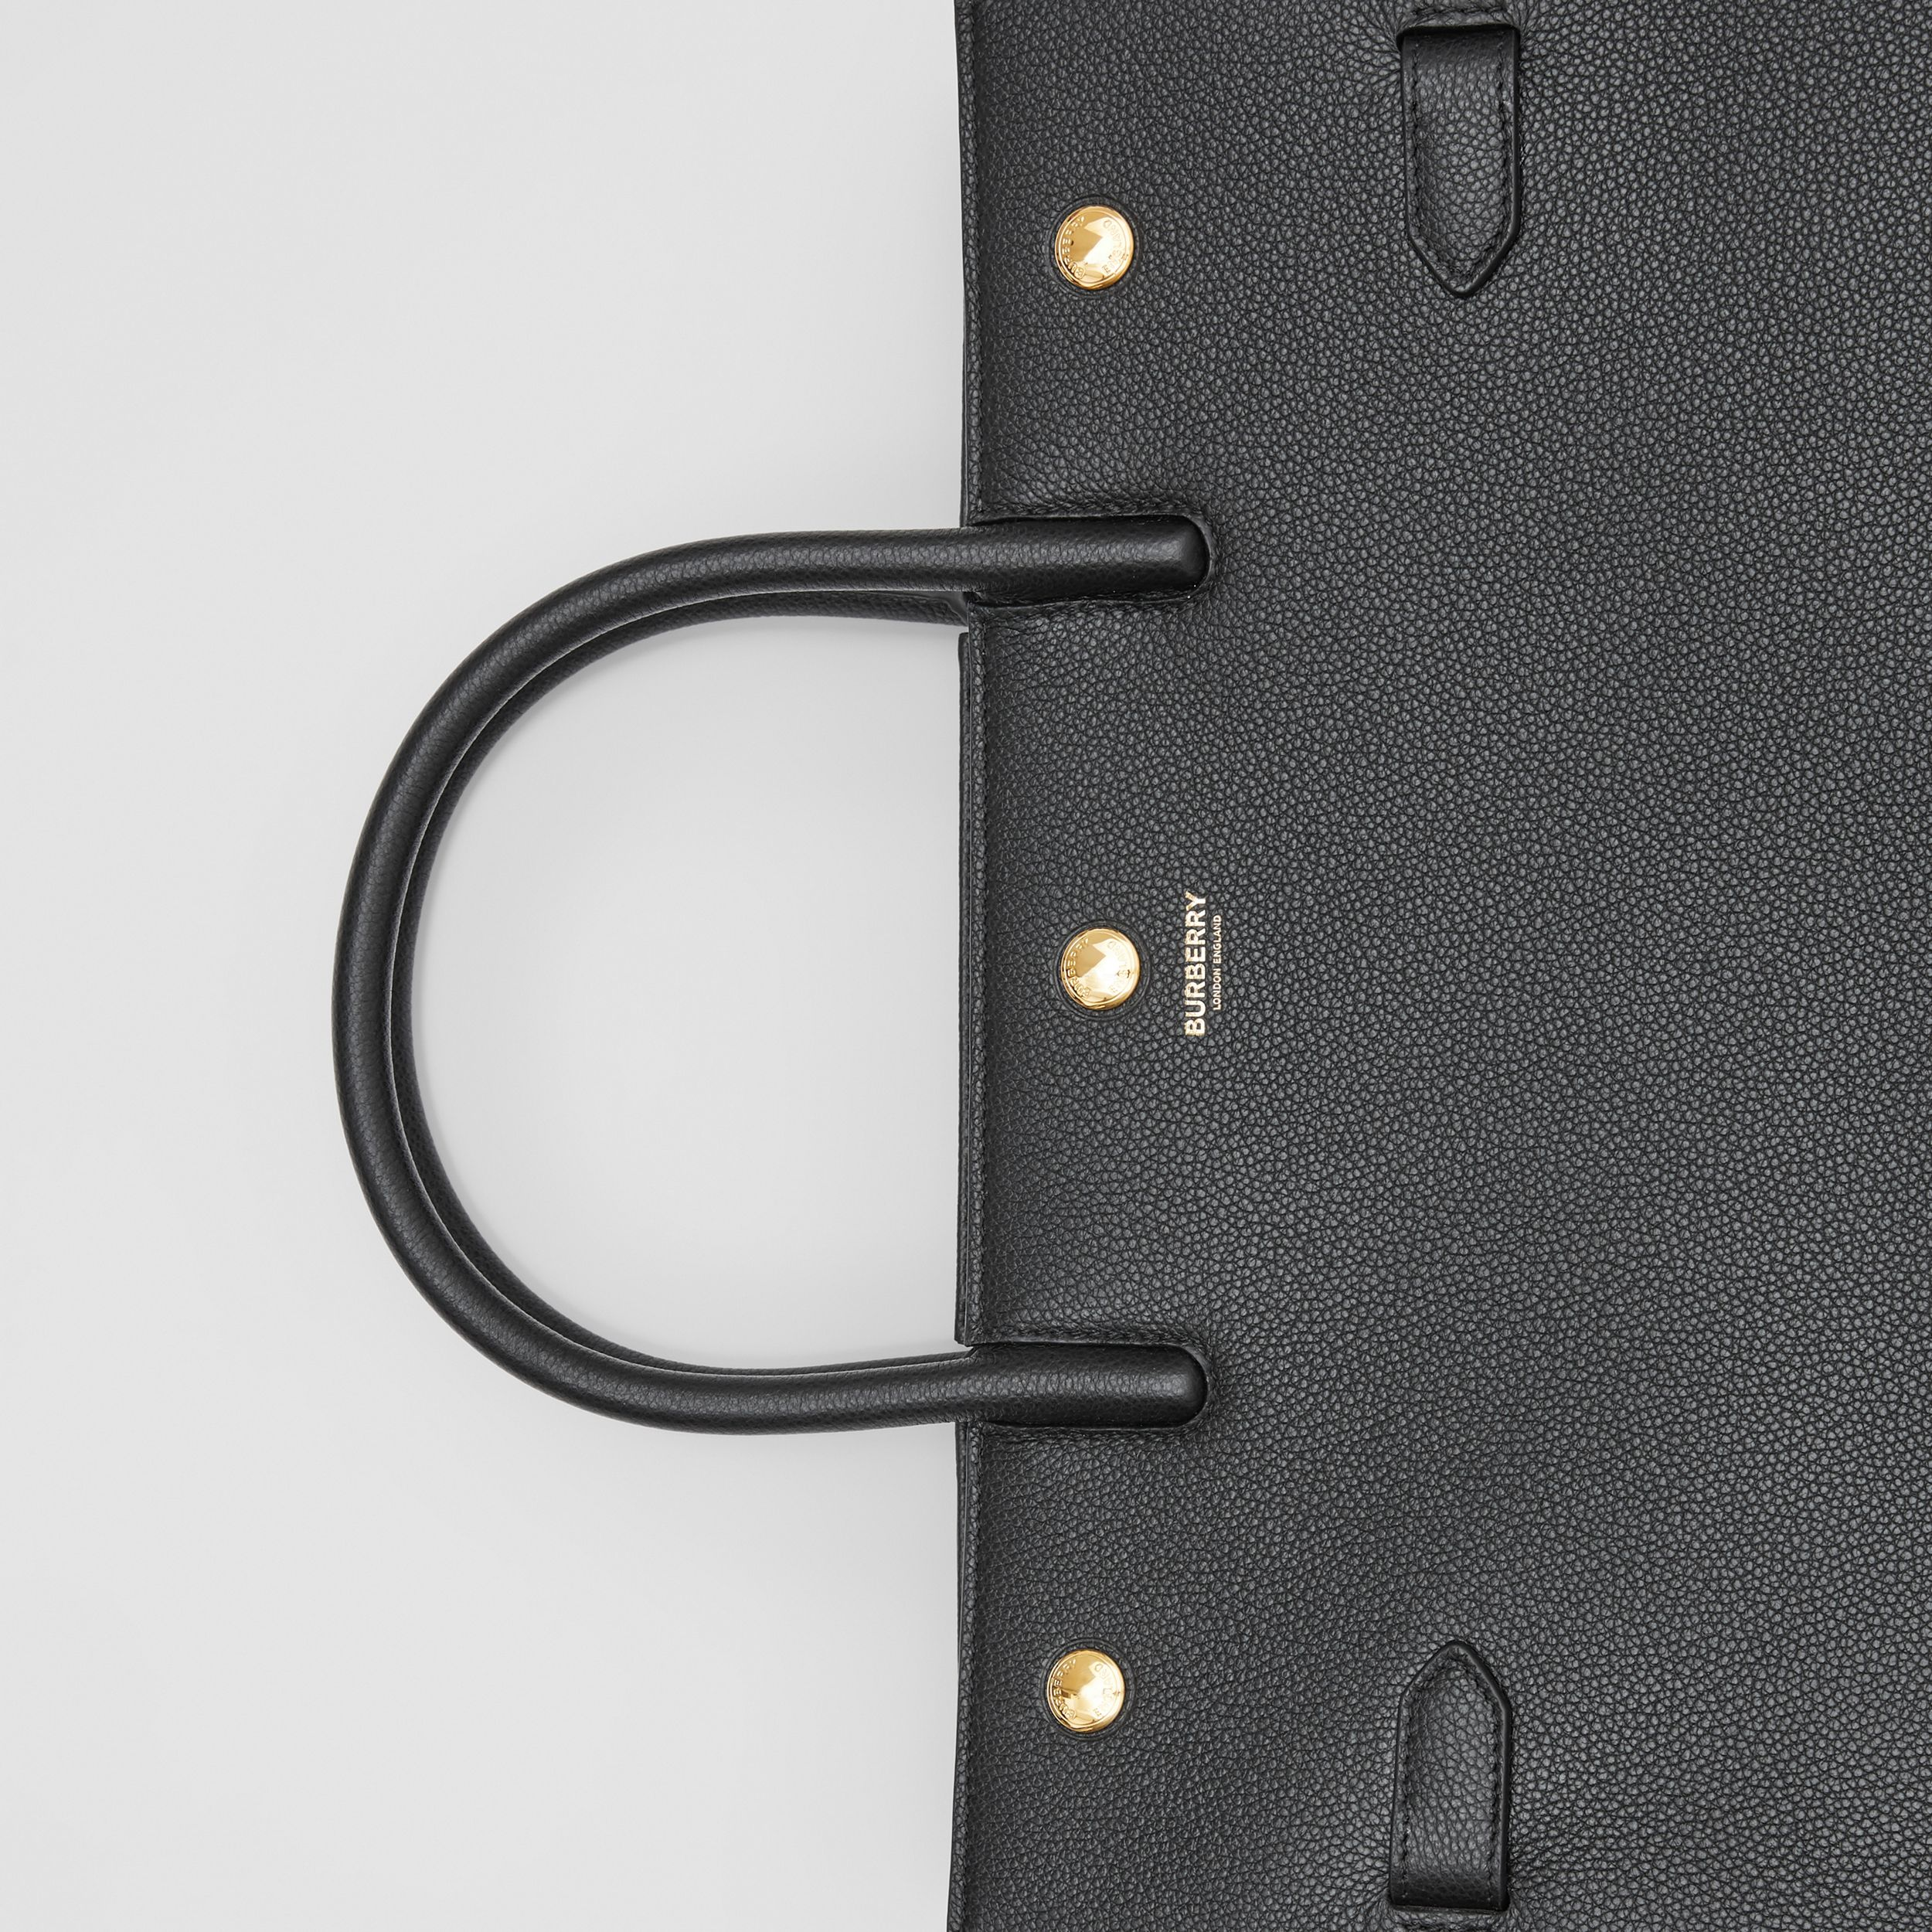 Medium Leather Two-handle Title Bag in Black - Women | Burberry Australia - 2